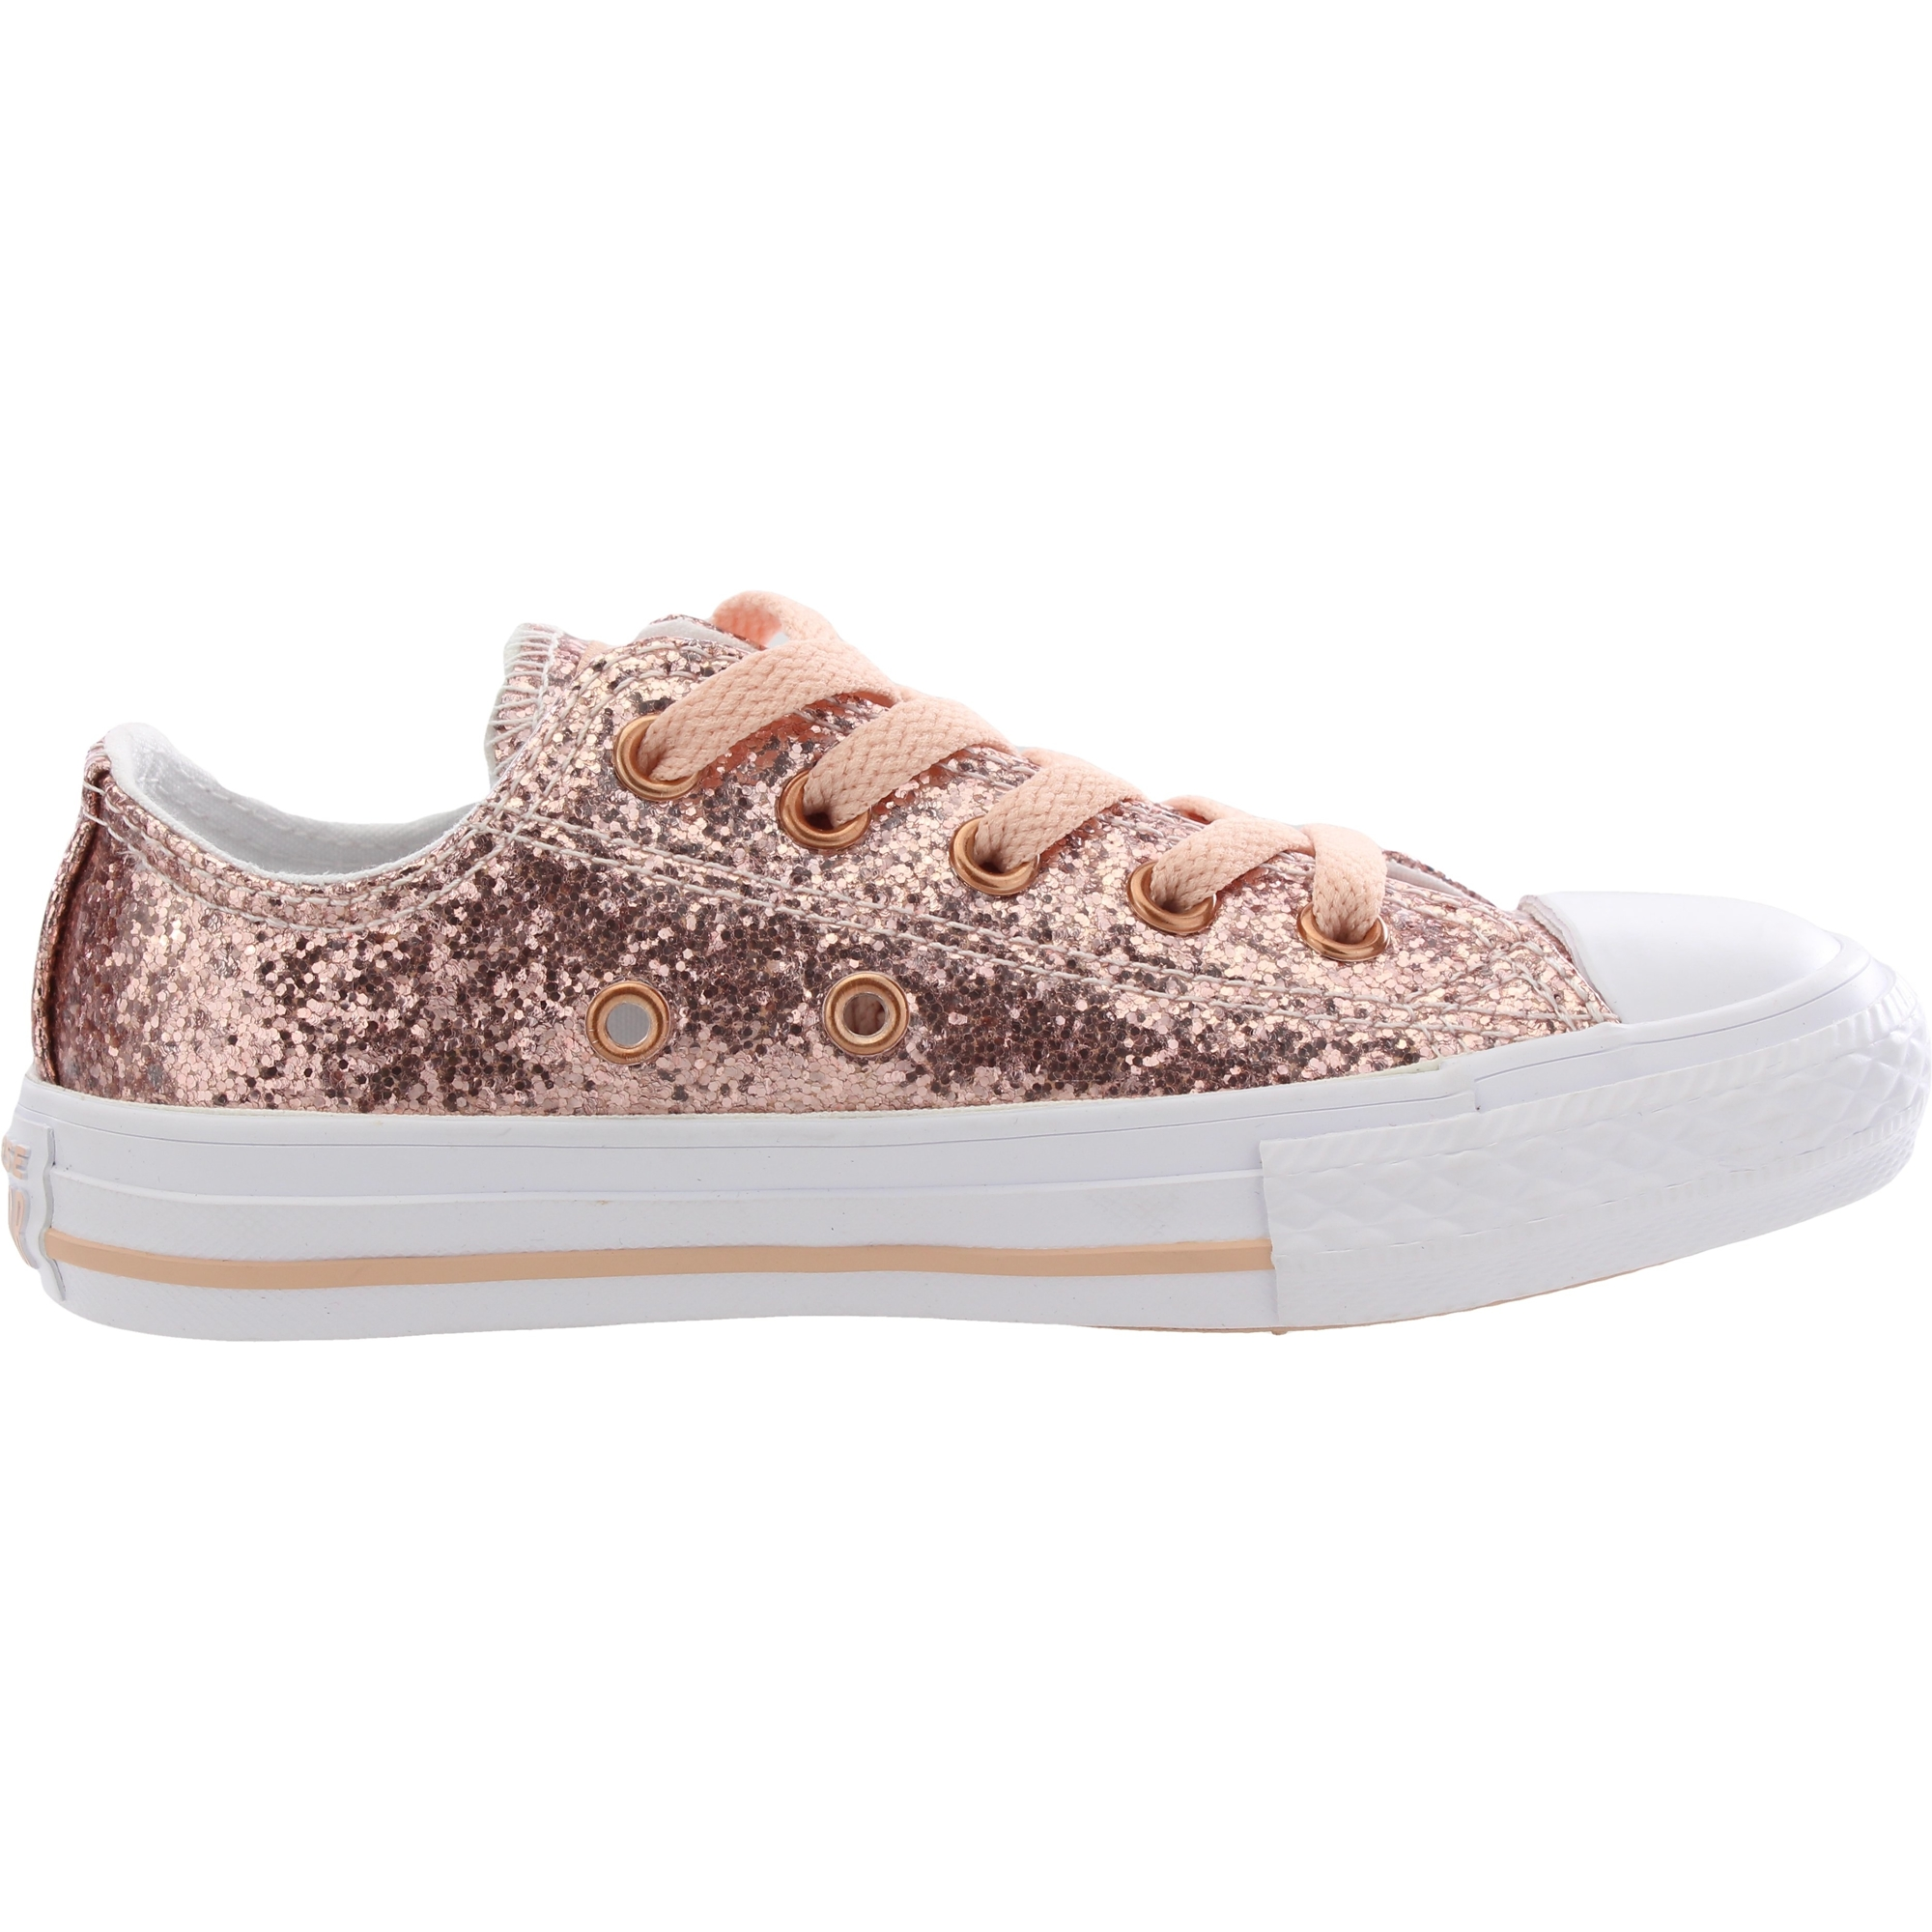 Converse Chuck Taylor All Star Glitter Dust Pink Synthetic Junior